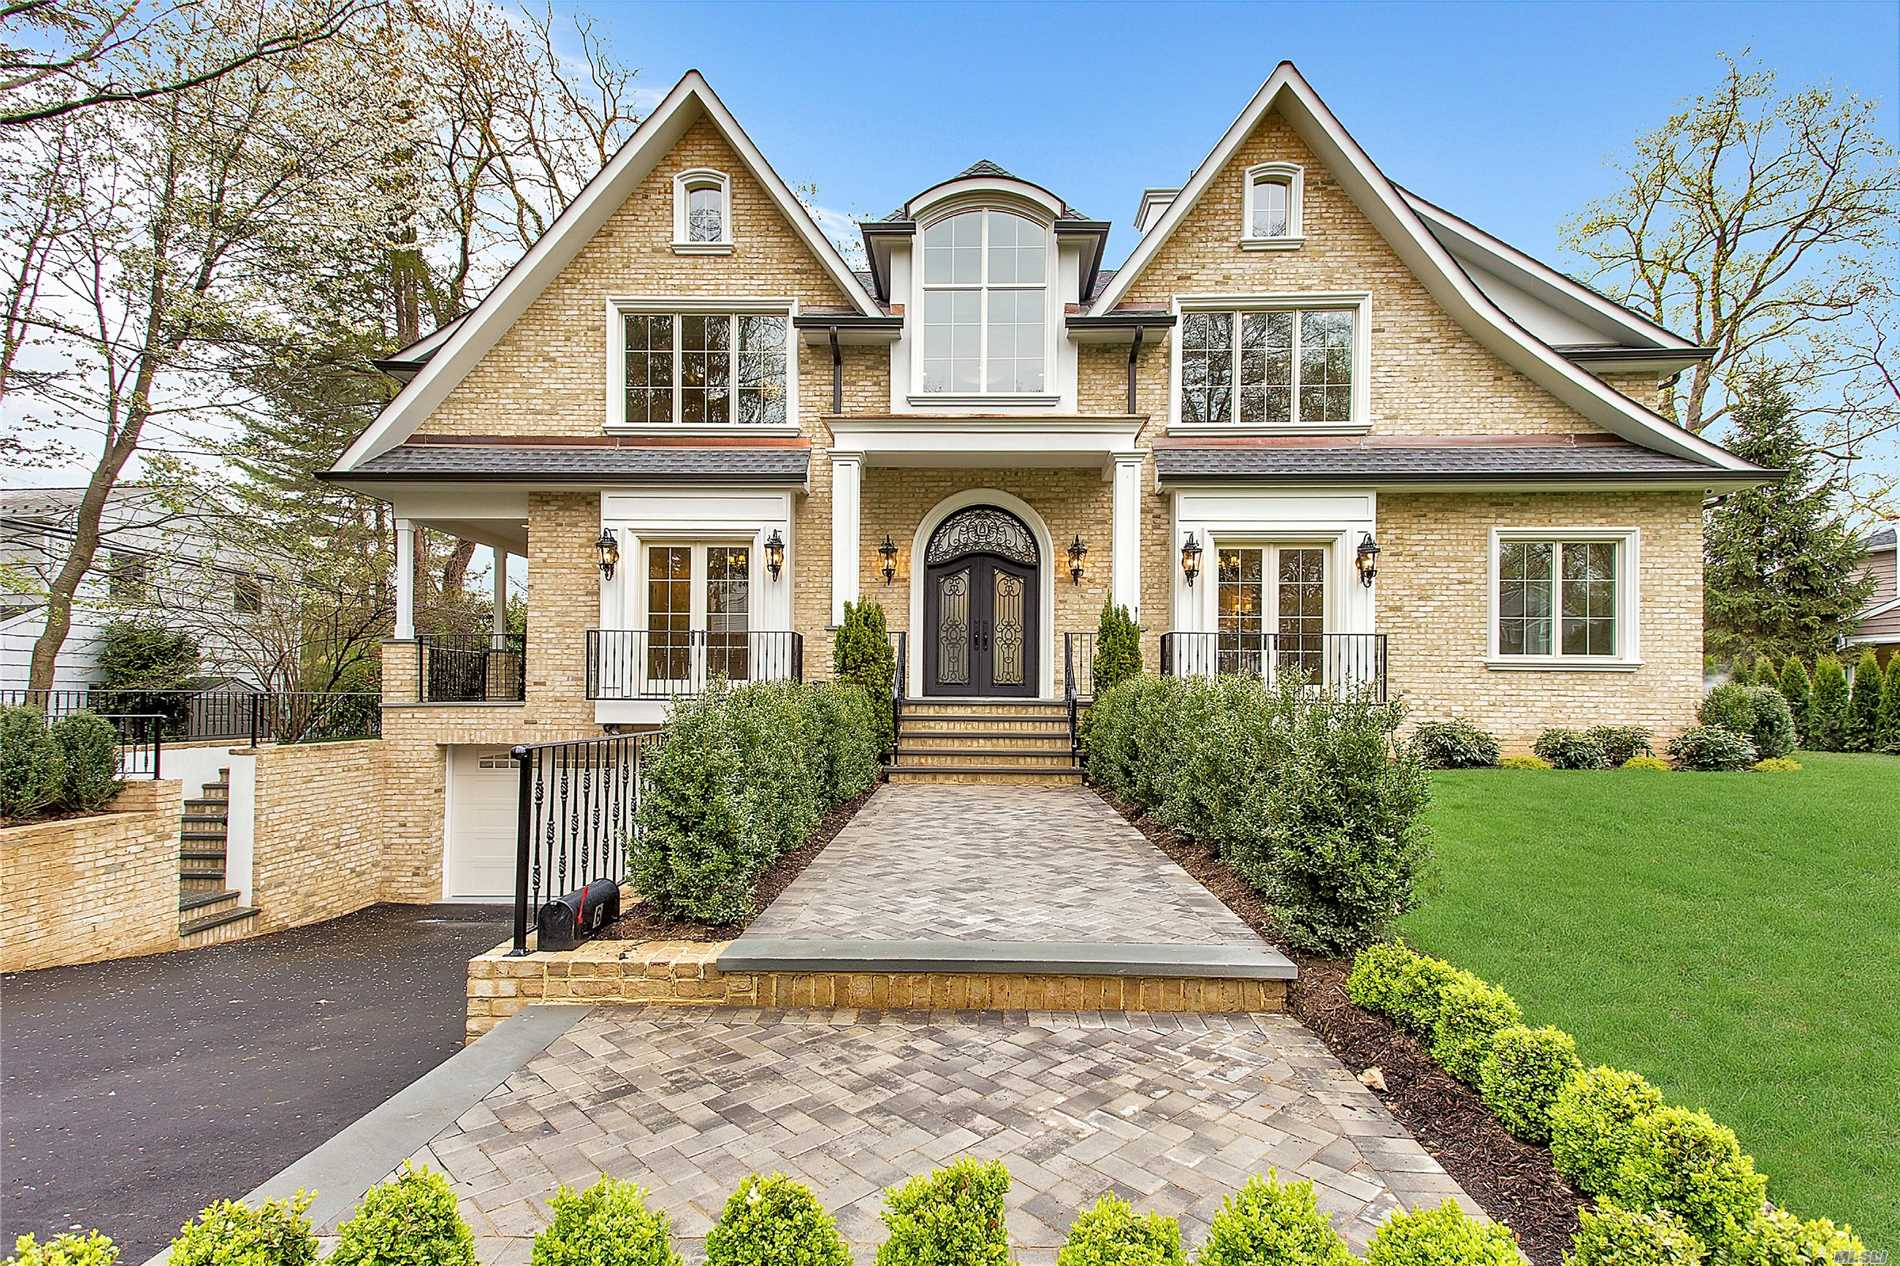 Spectacular All Brick New Construction In The Heart Of The Prestigious Village Of Lake Success. The Home Boasts A Two Story Foyer, State Of The Art Eat-In-Kitchen, Movie Theater, Massive Walk-In-Closets In All Bedrooms, Gym, Bar And Much More. The Village Offers Private Police, Pool Club, Private Park, 18 Hole Golf Course, Etc.